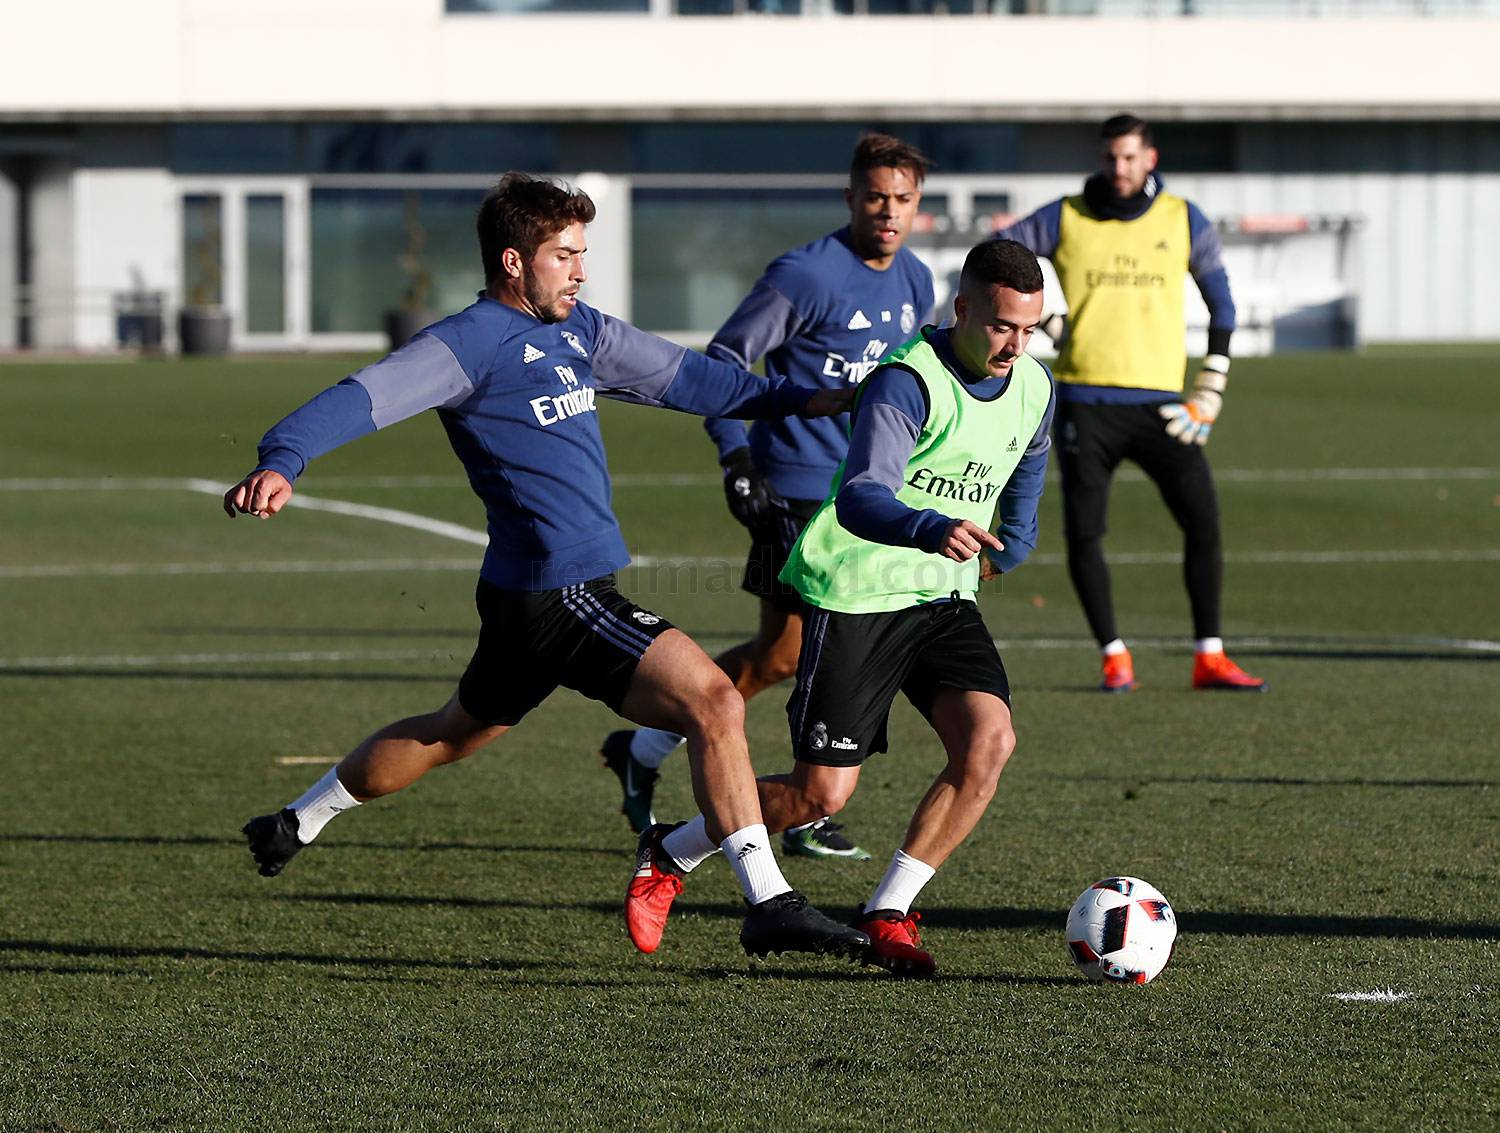 Real Madrid - Entrenamiento del Real Madrid - 16-01-2017